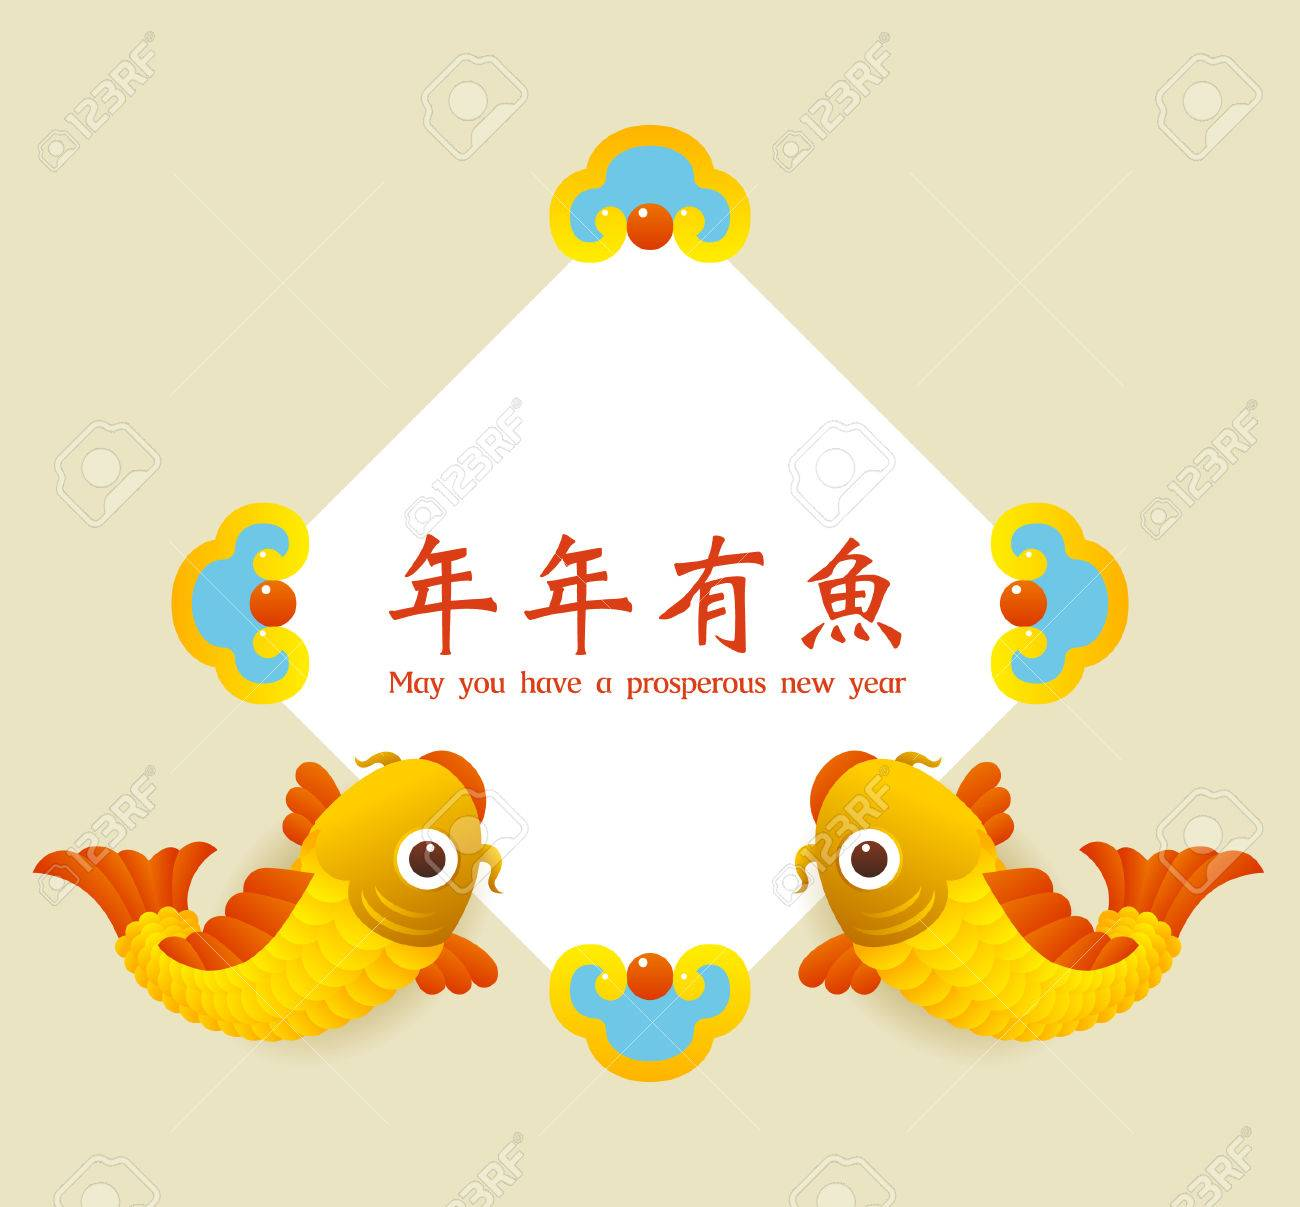 Happy new year chinese characters and the symbol of happiness happy new year chinese characters and the symbol of happiness in the form of fish translation buycottarizona Gallery